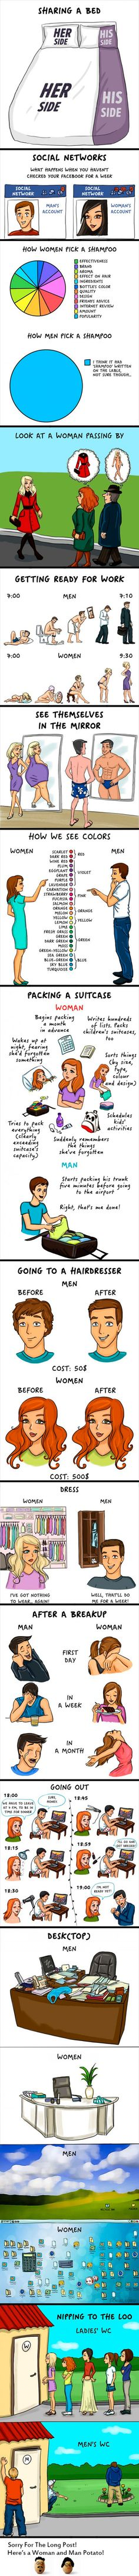 Differences Between Men And Women very accurate hahaha